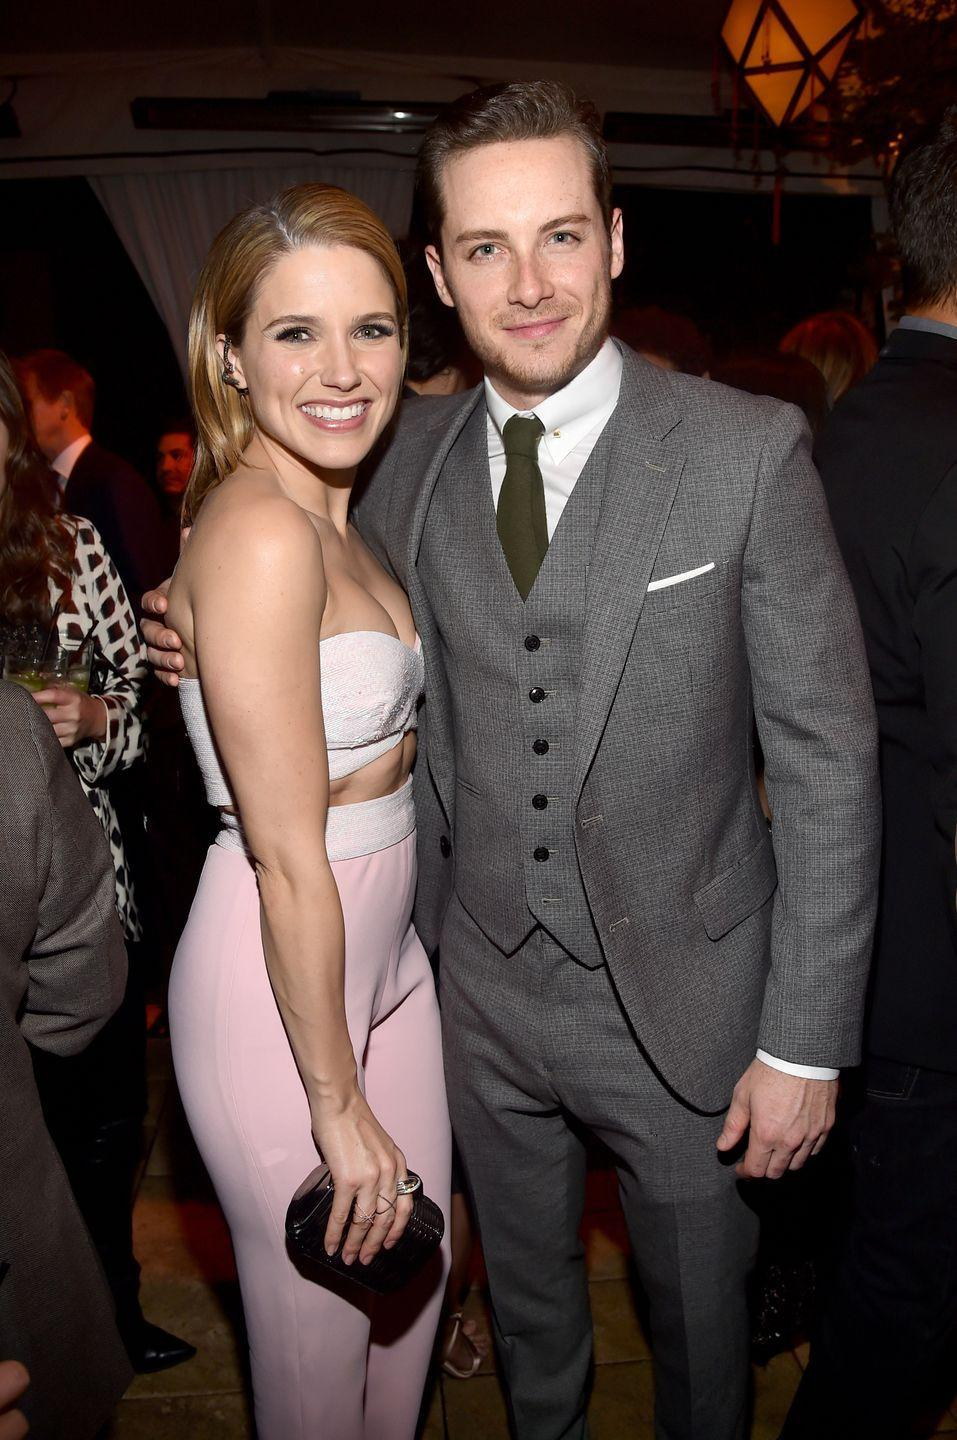 """<p>Sophia also dated her Chicago PD co-star Jesse Lee Soffer. The pair only last <a href=""""https://www.eonline.com/news/665944/sophia-bush-and-boyfriend-jesse-lee-soffer-break-up"""" rel=""""nofollow noopener"""" target=""""_blank"""" data-ylk=""""slk:about a year"""" class=""""link rapid-noclick-resp"""">about a year </a>before calling it quits. According to a <a href=""""http://www.justjared.com/2015/06/11/sophia-bush-jesse-lee-soffer-split-exclusive/"""" rel=""""nofollow noopener"""" target=""""_blank"""" data-ylk=""""slk:JustJared source"""" class=""""link rapid-noclick-resp"""">JustJared source</a>, the couple 'grew apart.' Sophia and Jesse continued to work together on the NBC show until Sophia <a href=""""https://www.tvinsider.com/737380/sophia-bush-chicago-pd-exit-abusive-behavior/"""" rel=""""nofollow noopener"""" target=""""_blank"""" data-ylk=""""slk:left the series in 2017"""" class=""""link rapid-noclick-resp"""">left the series in 2017</a>.</p>"""